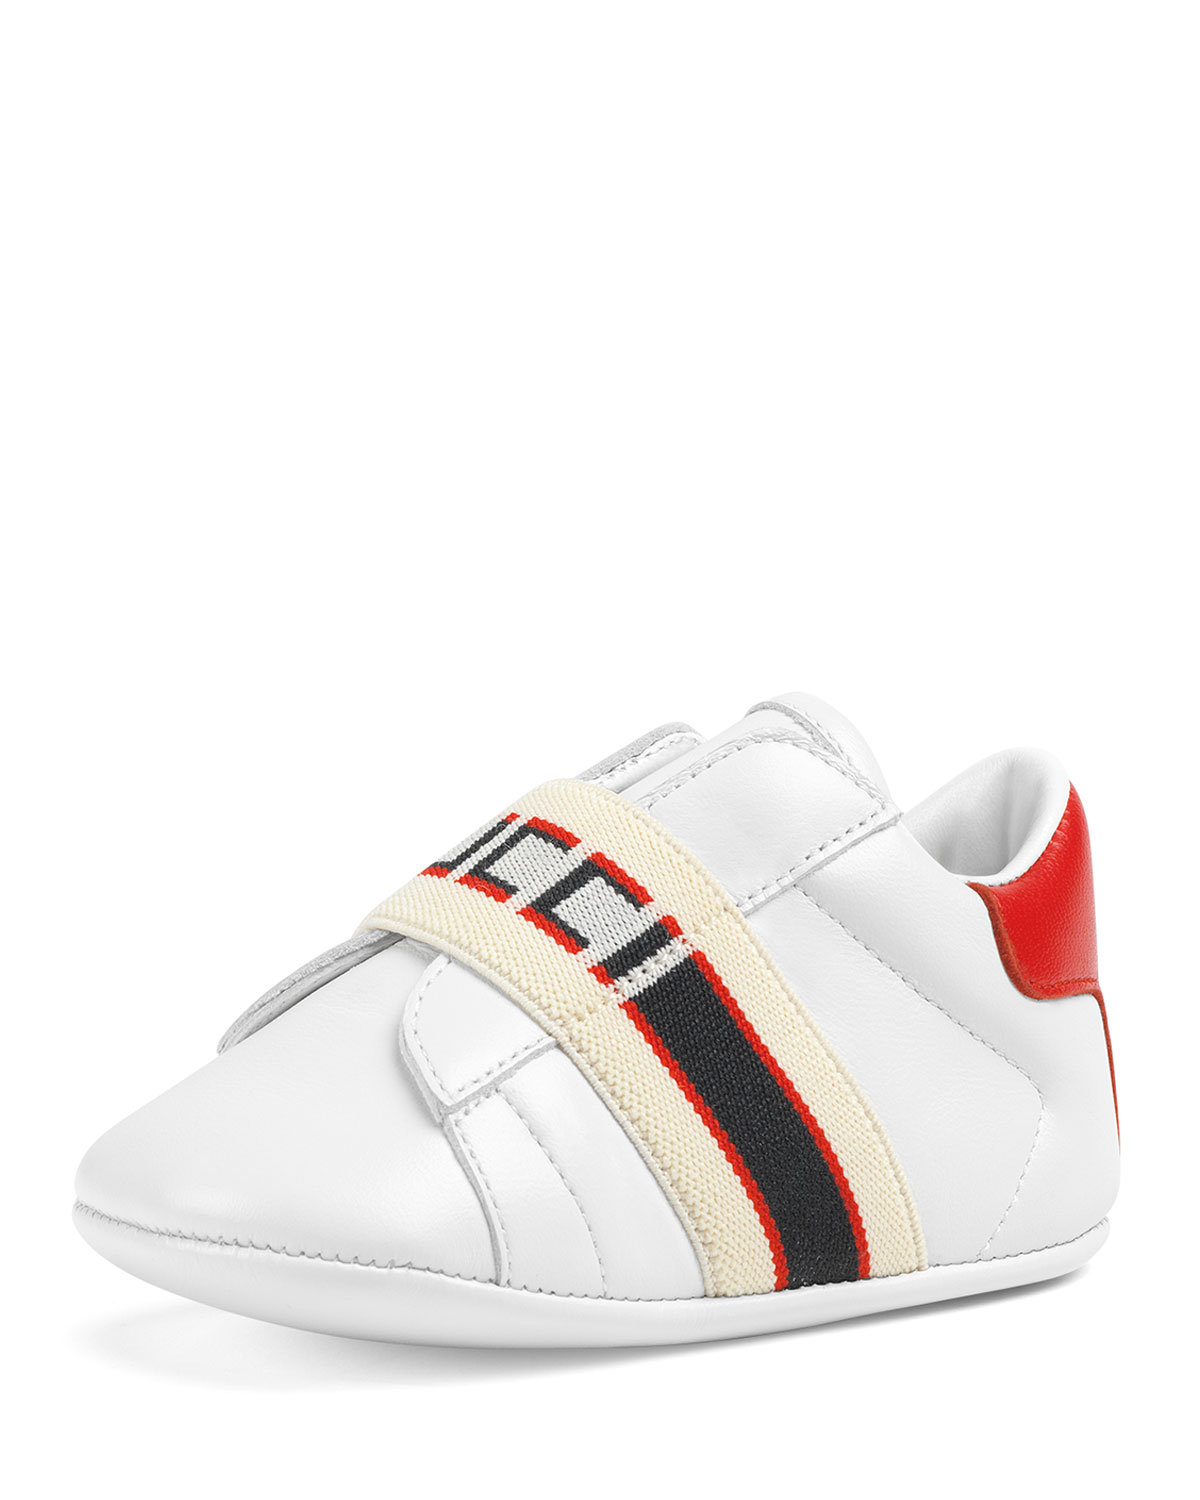 65c4b681cf8 Gucci New Ace Gucci Band Leather Sneakers